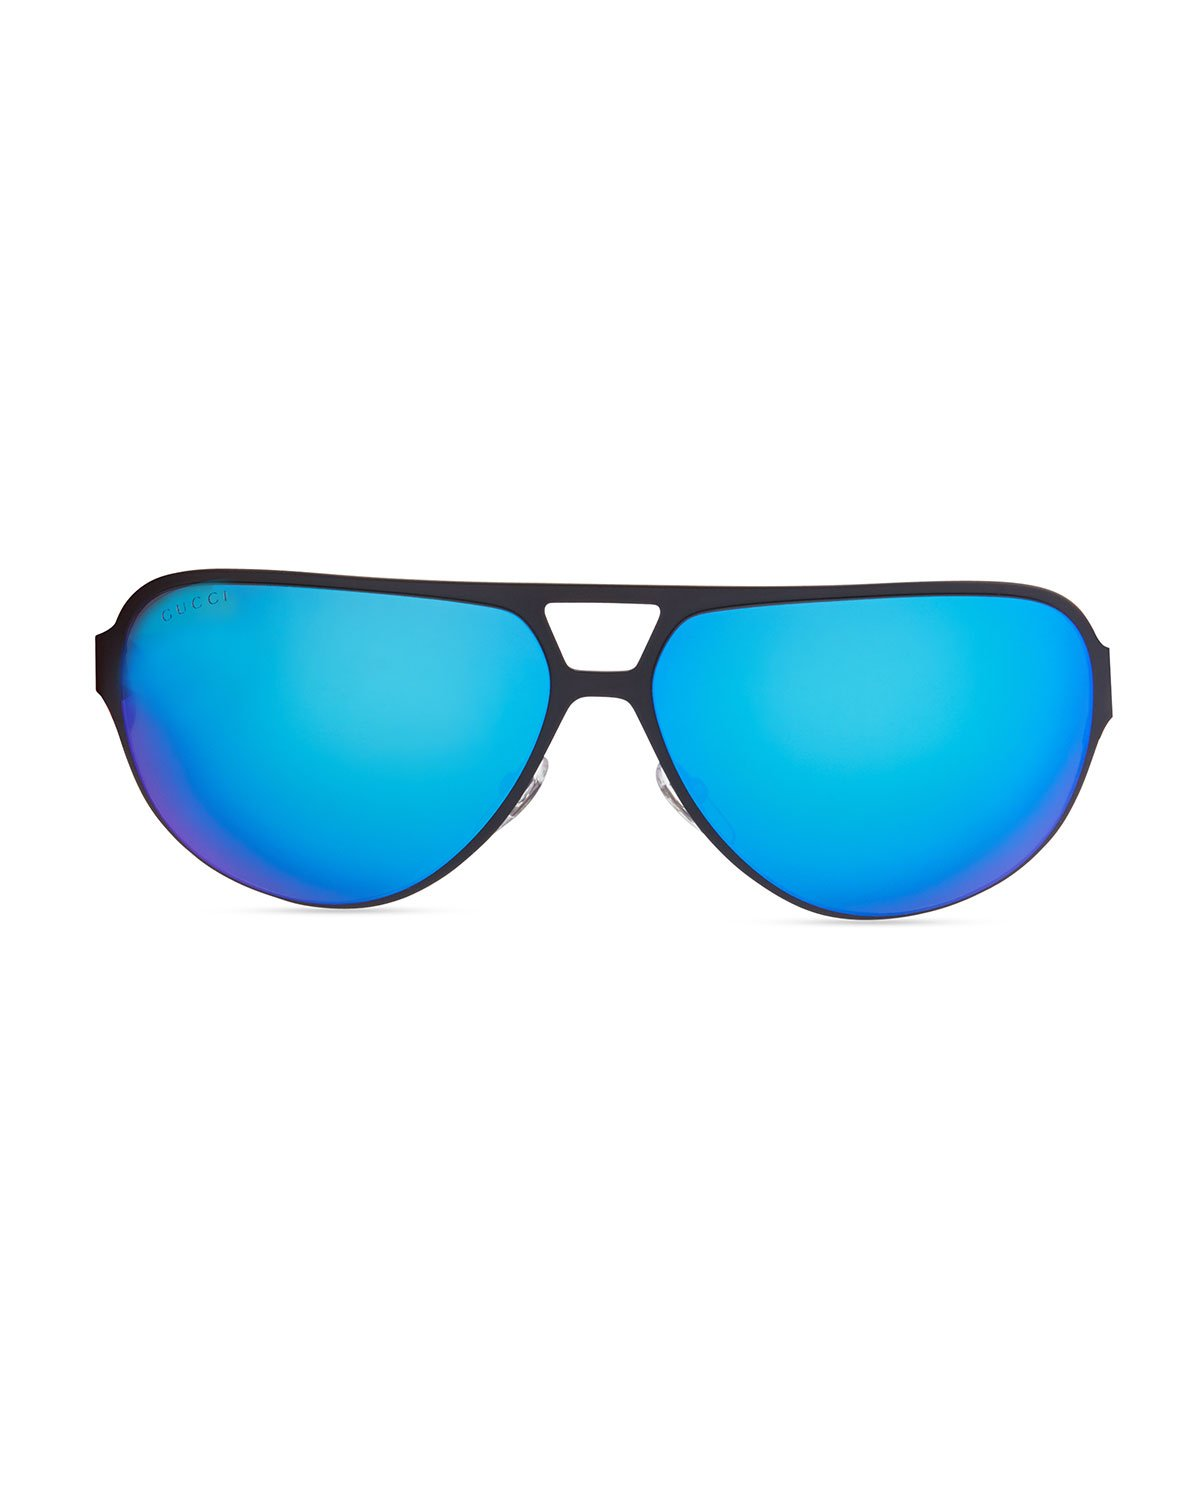 68b0a22b1d1 Lyst - Gucci Semi Matte Aviator Sunglasses in Blue for Men